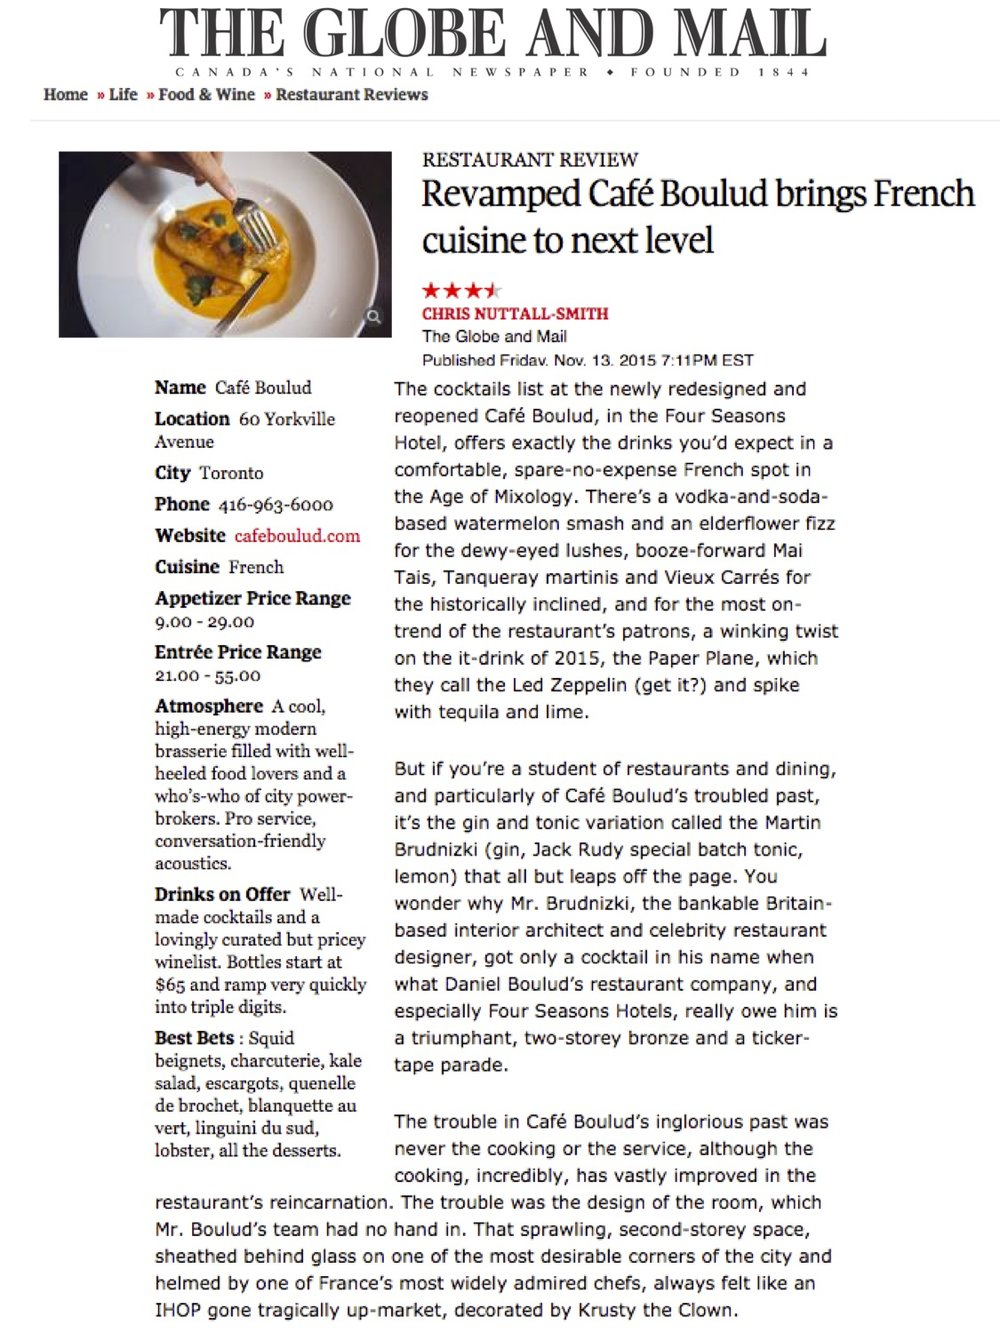 Cafe Boulud Toronto - The Globe and Mail, 11.13.15.jpg